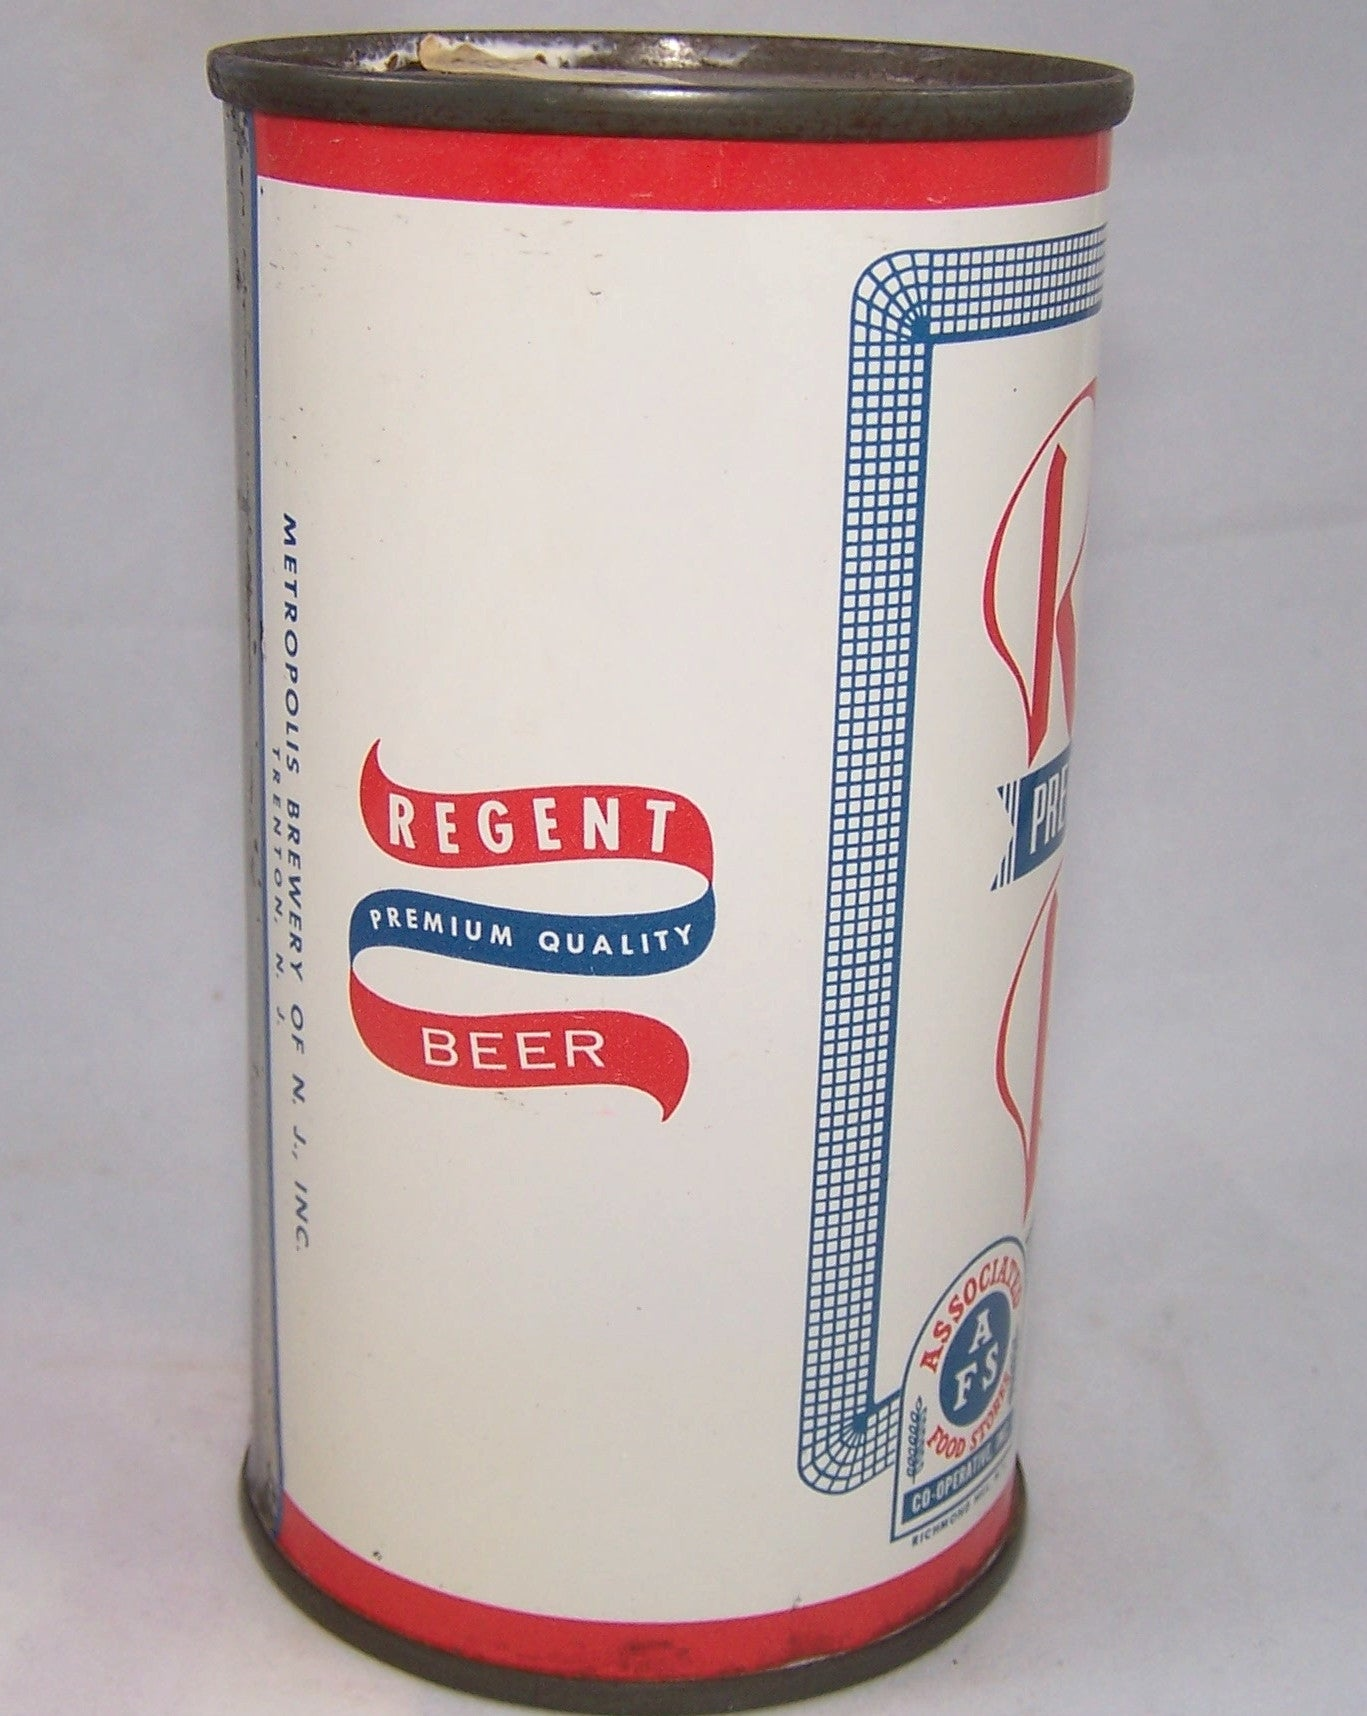 Regent Premium Quality Beer, USBC 122-13, Grade 1 to 1/1+Sold on 07/23/16